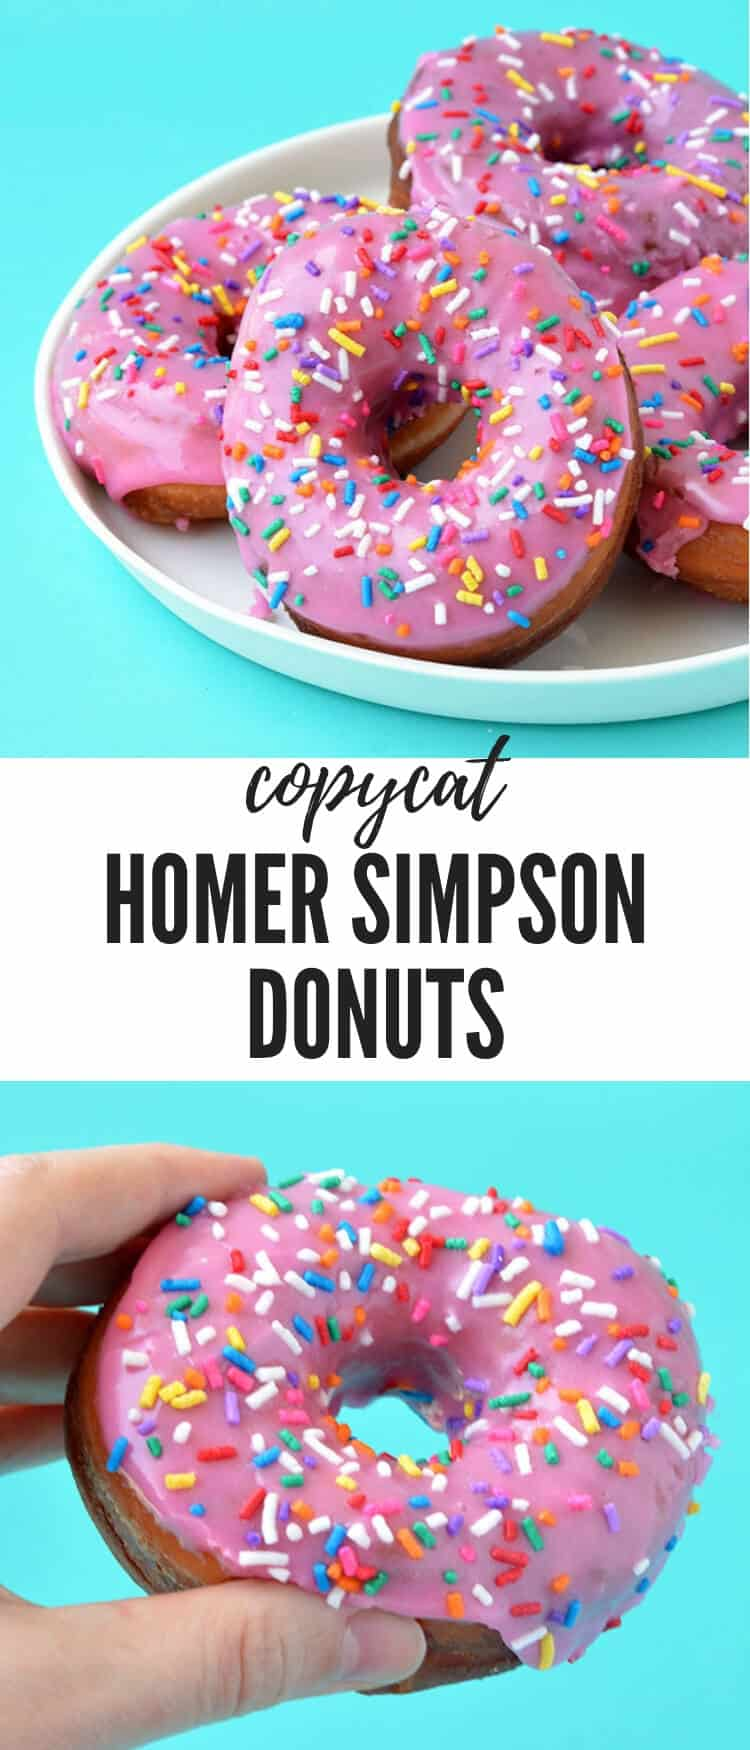 Fan of The Simpsons? You'll love munching on these Homer Simpson Donuts. Deep-fried and topped with a sweet pink glaze and loads of funfetti sprinkles, they're the ultimate donut. Recipe from sweetestmenu.com #donuts #doughnuts #sprinkles #funfetti